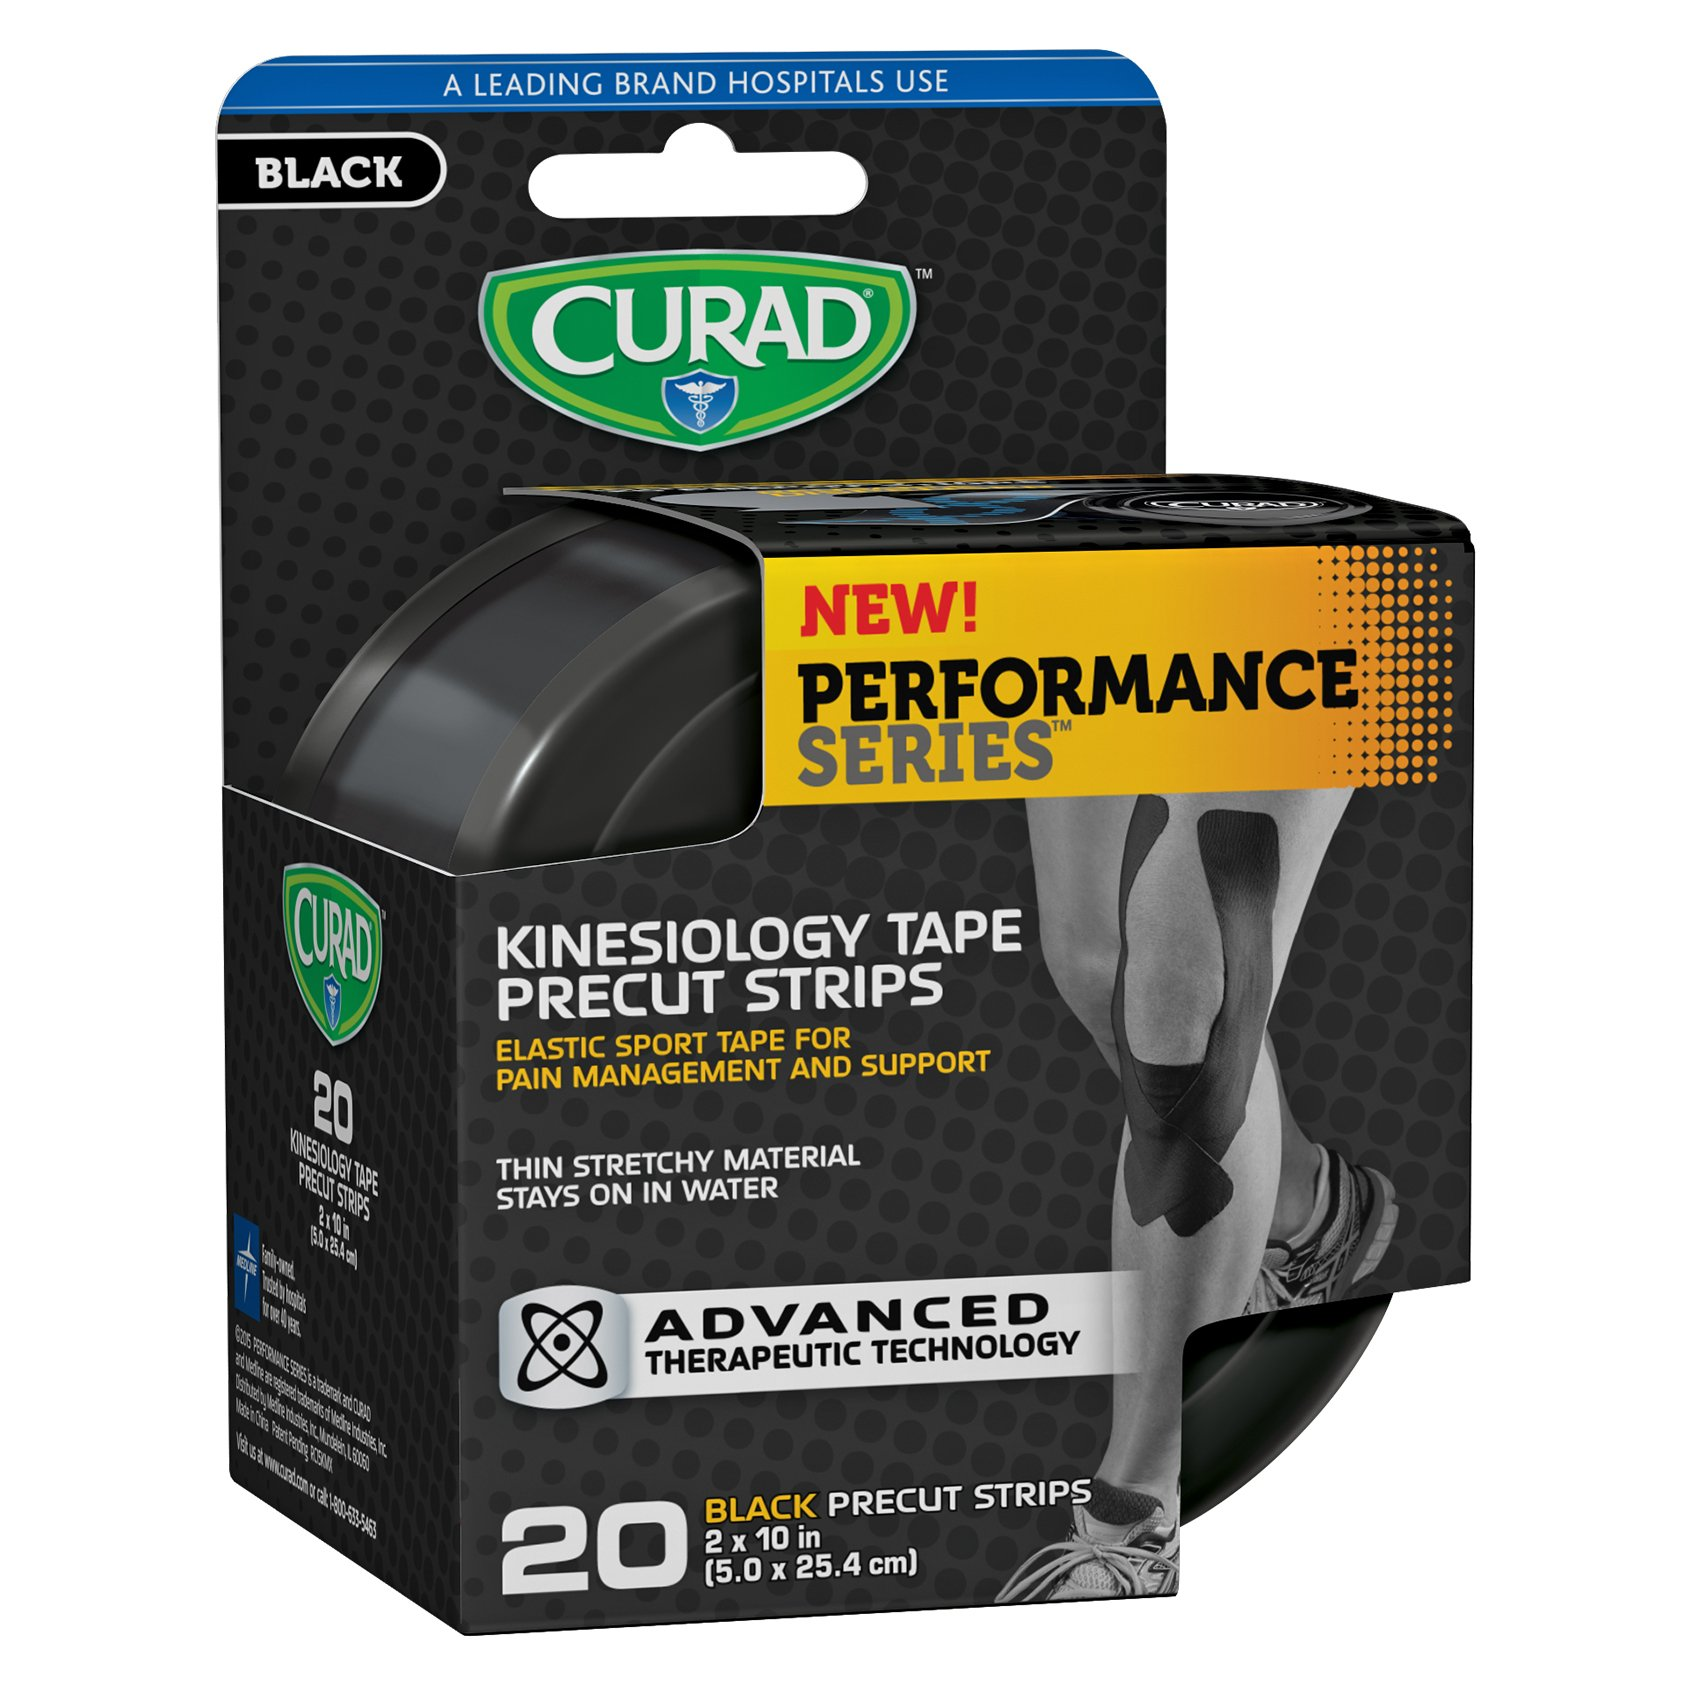 Curad Performance Series Kinesiology Tape Precut Strips, Black, 20 Count (Pack of 12)